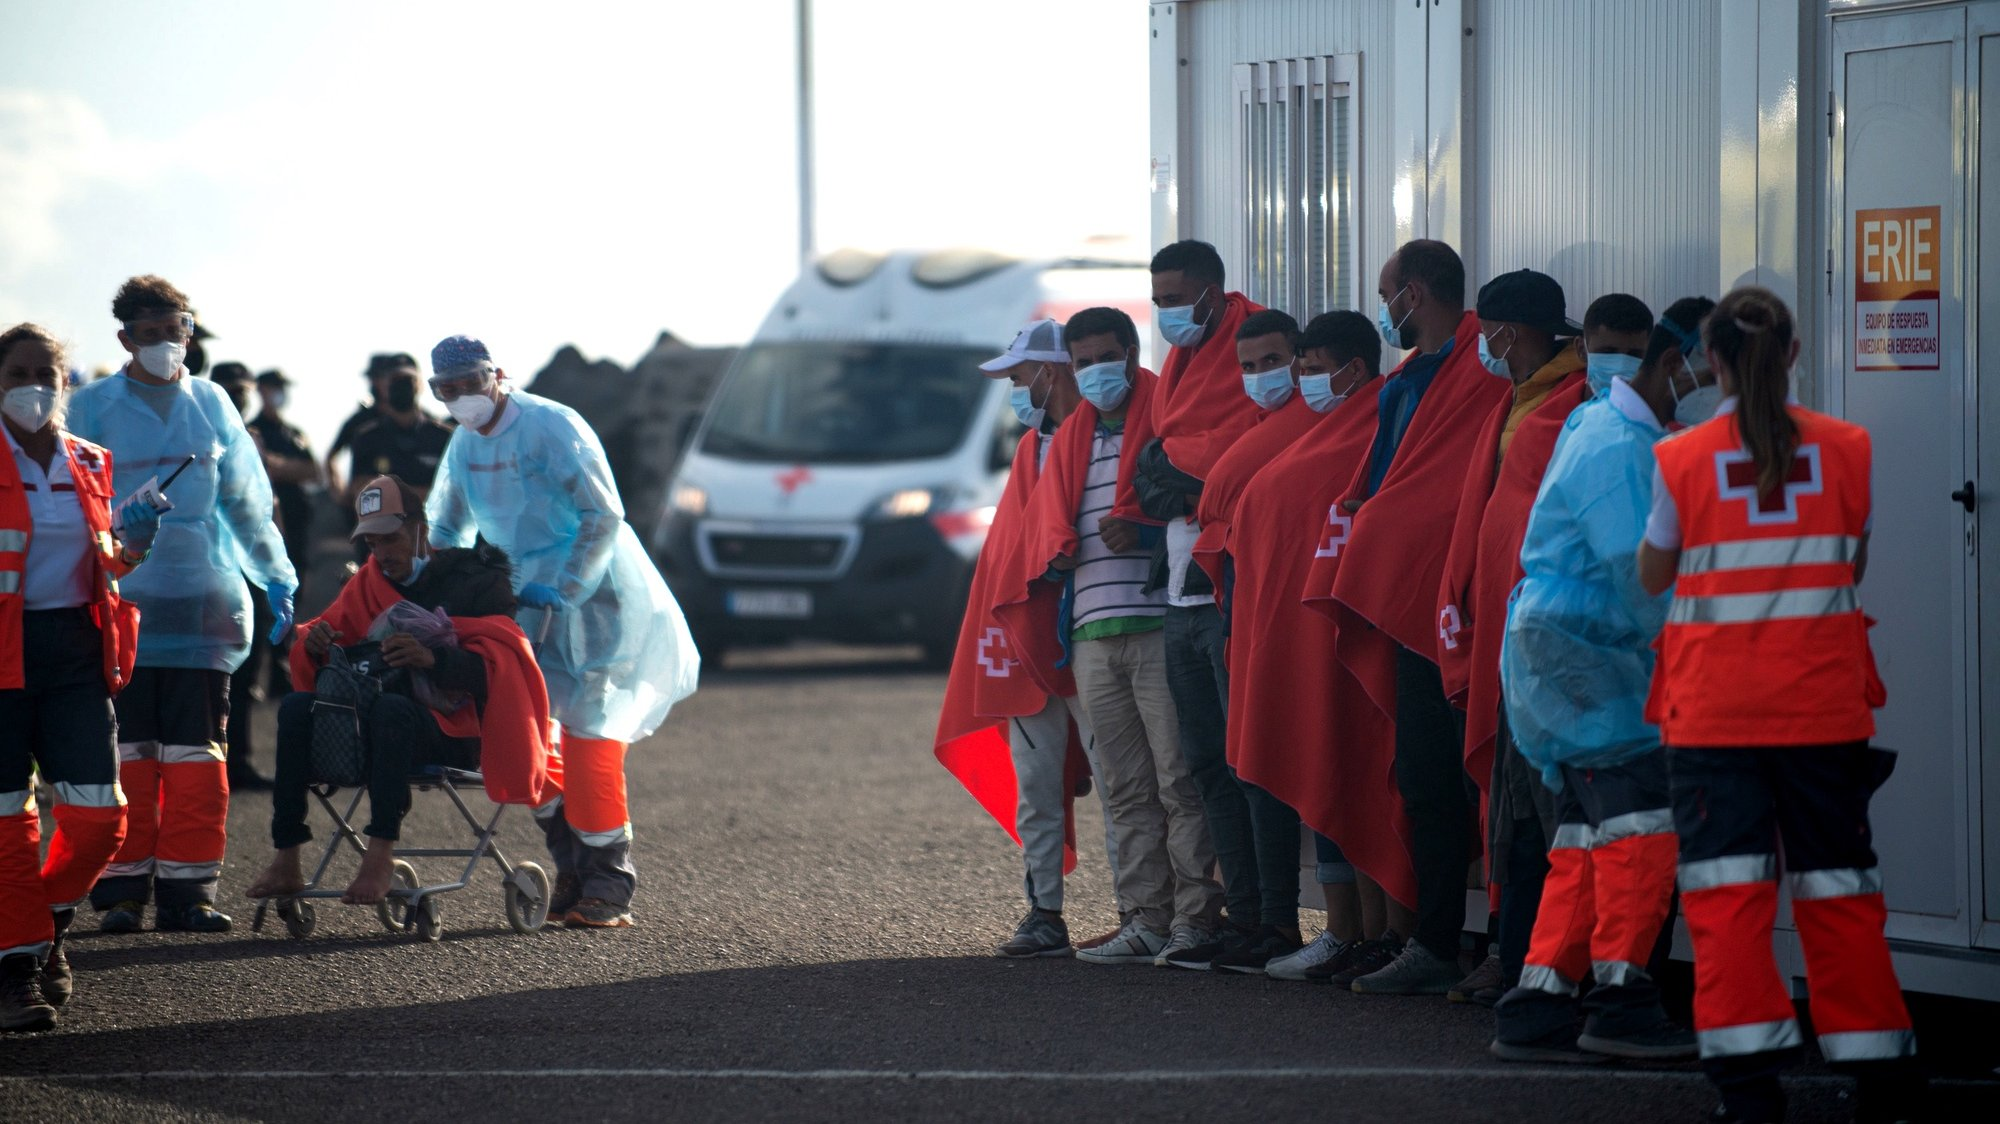 epa09468304 Migrants arrive at the port of Arrecife in Lanzarote, Canary islands, Spain, 14 September 2021. Some 200 migrants were rescued by Spanish Salvamento Maritimo's rescue vessel 'Salvamar Al Nair' as they sailed aboard six dugouts. A total of 400 migrants were rescued in the Canary islands within the last hours.  EPA/Javier Fuentes Figueroa